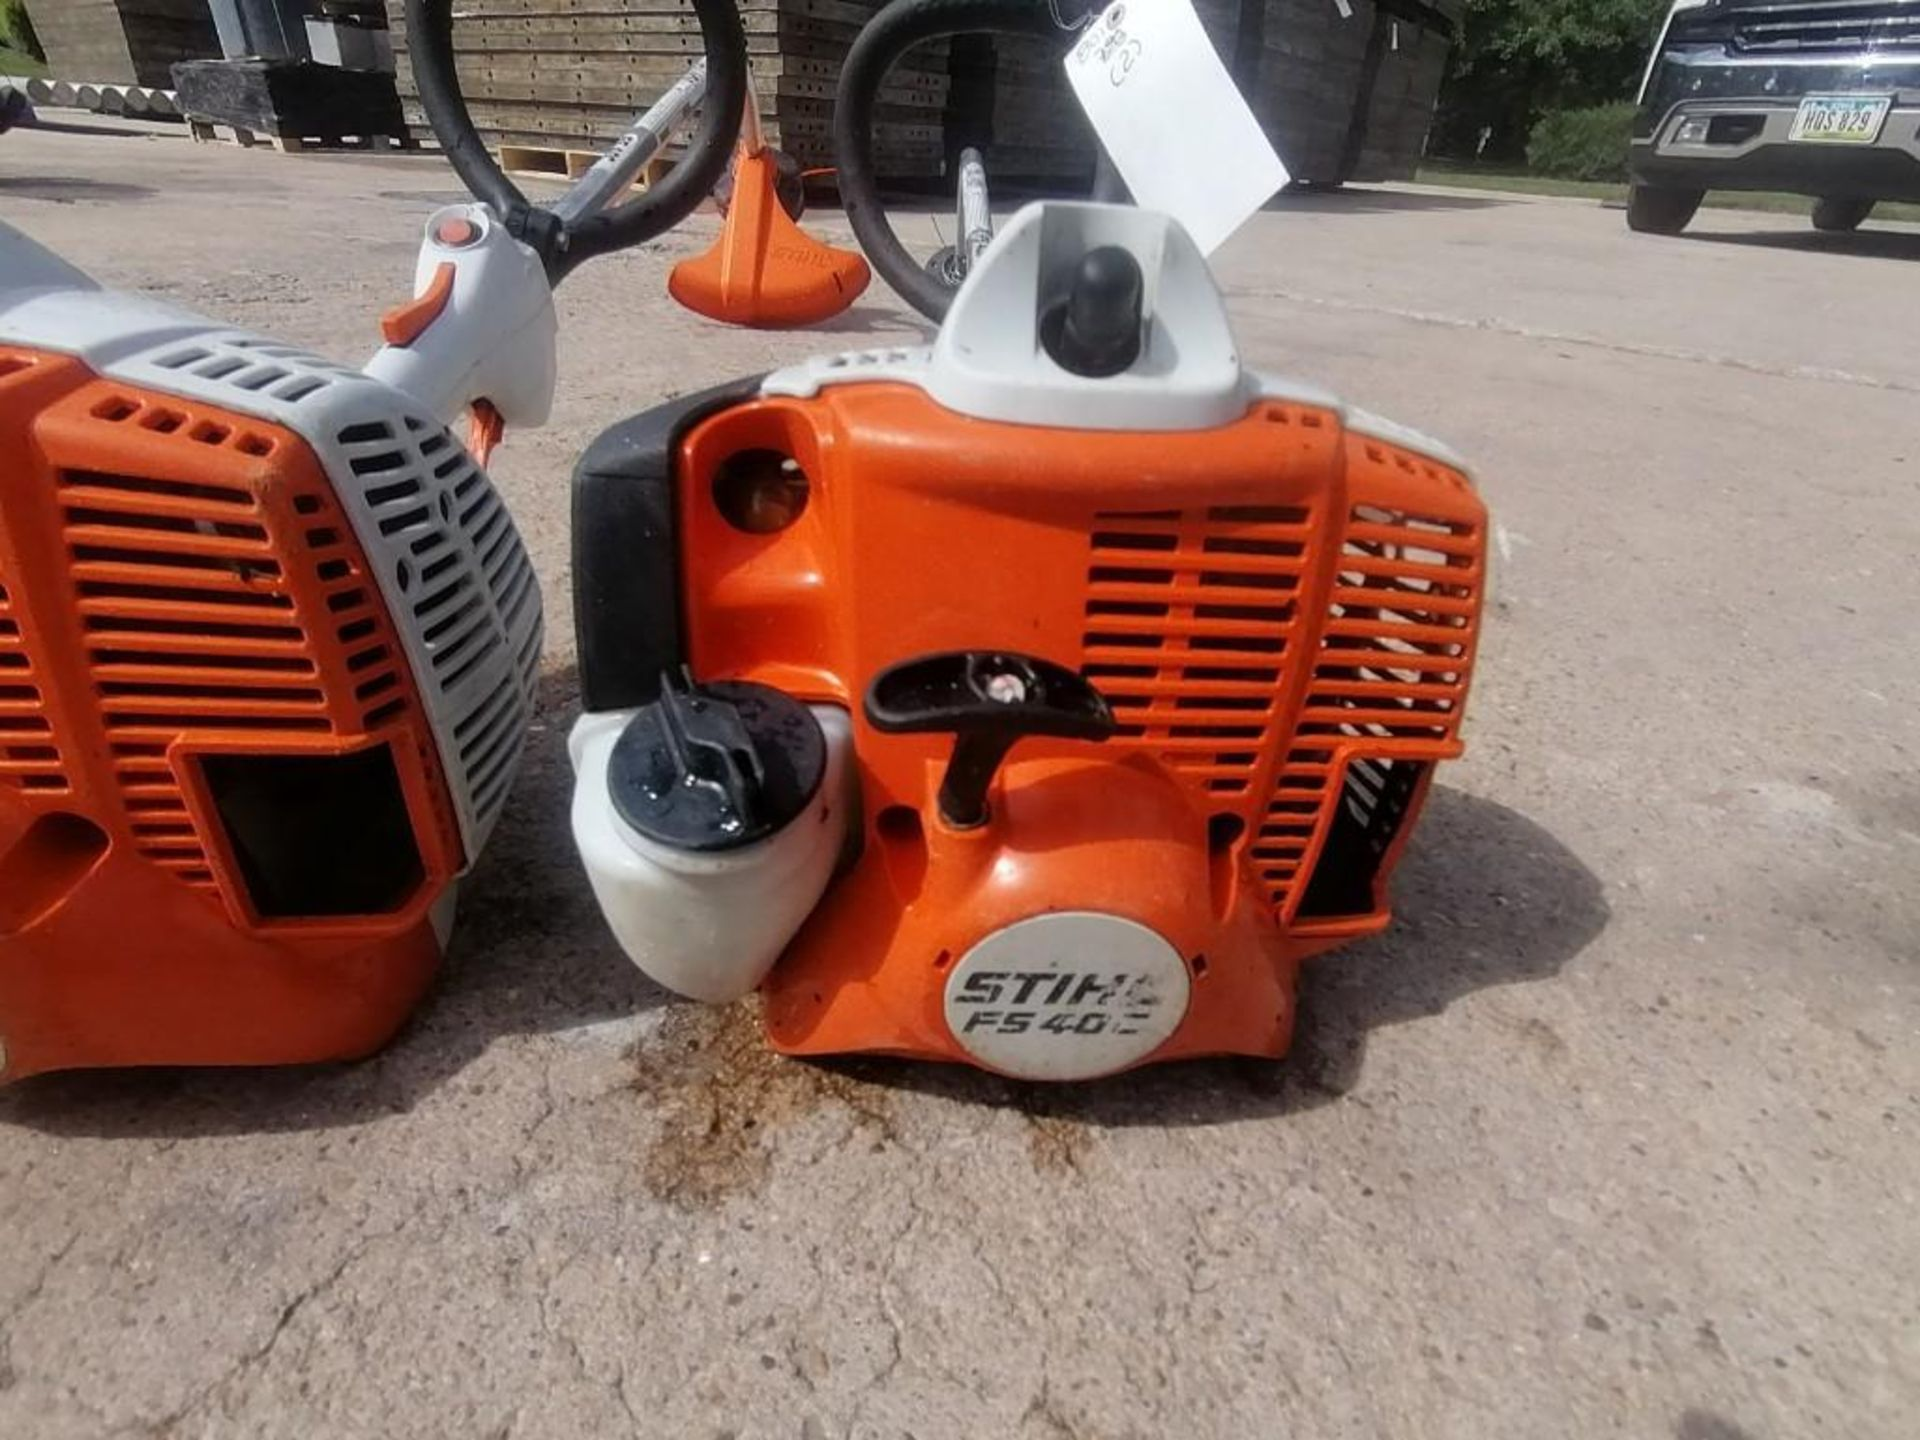 (2) Stihl FS40C String Trimmer. Located at 301 E Henry Street, Mt. Pleasant, IA 52641. - Image 3 of 6